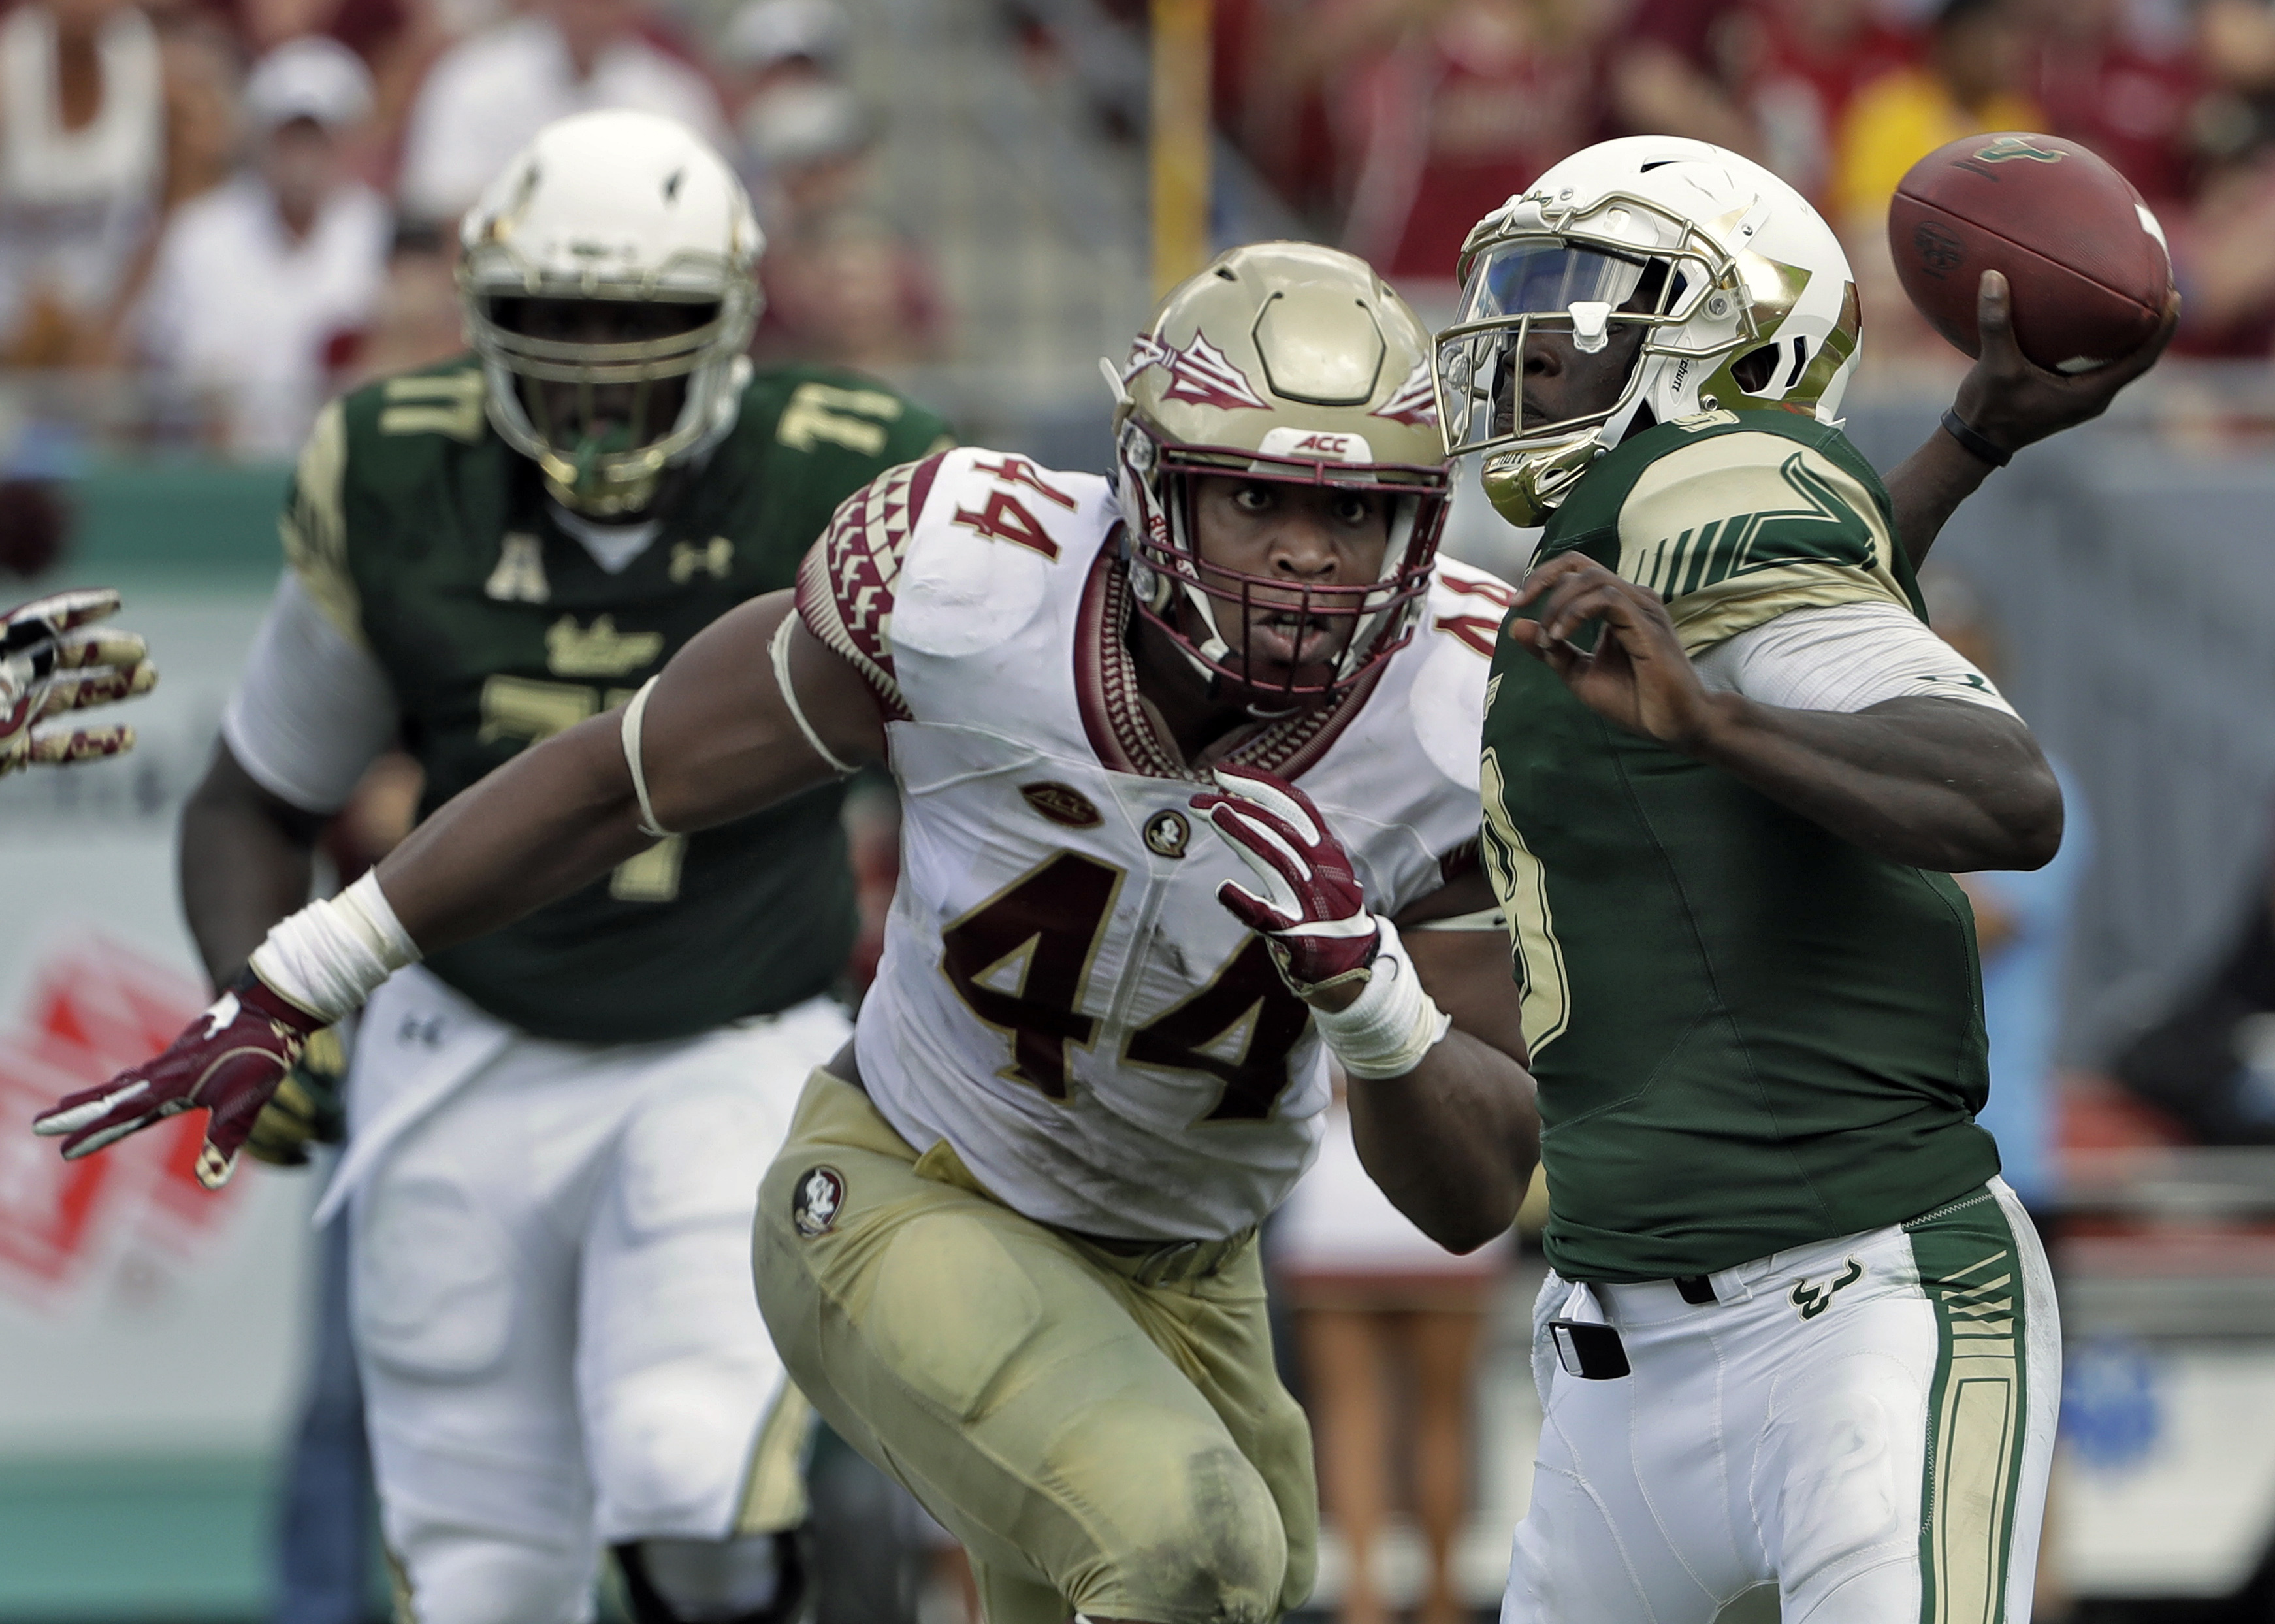 FILE - In this Sept. 24, 2016, file photo, Florida State defensive end DeMarcus Walker (44) closes in on South Florida quarterback Quinton Flowers as he throws a pass during the second half of an NCAA college football game, in Tampa, Fla. Walker was selec